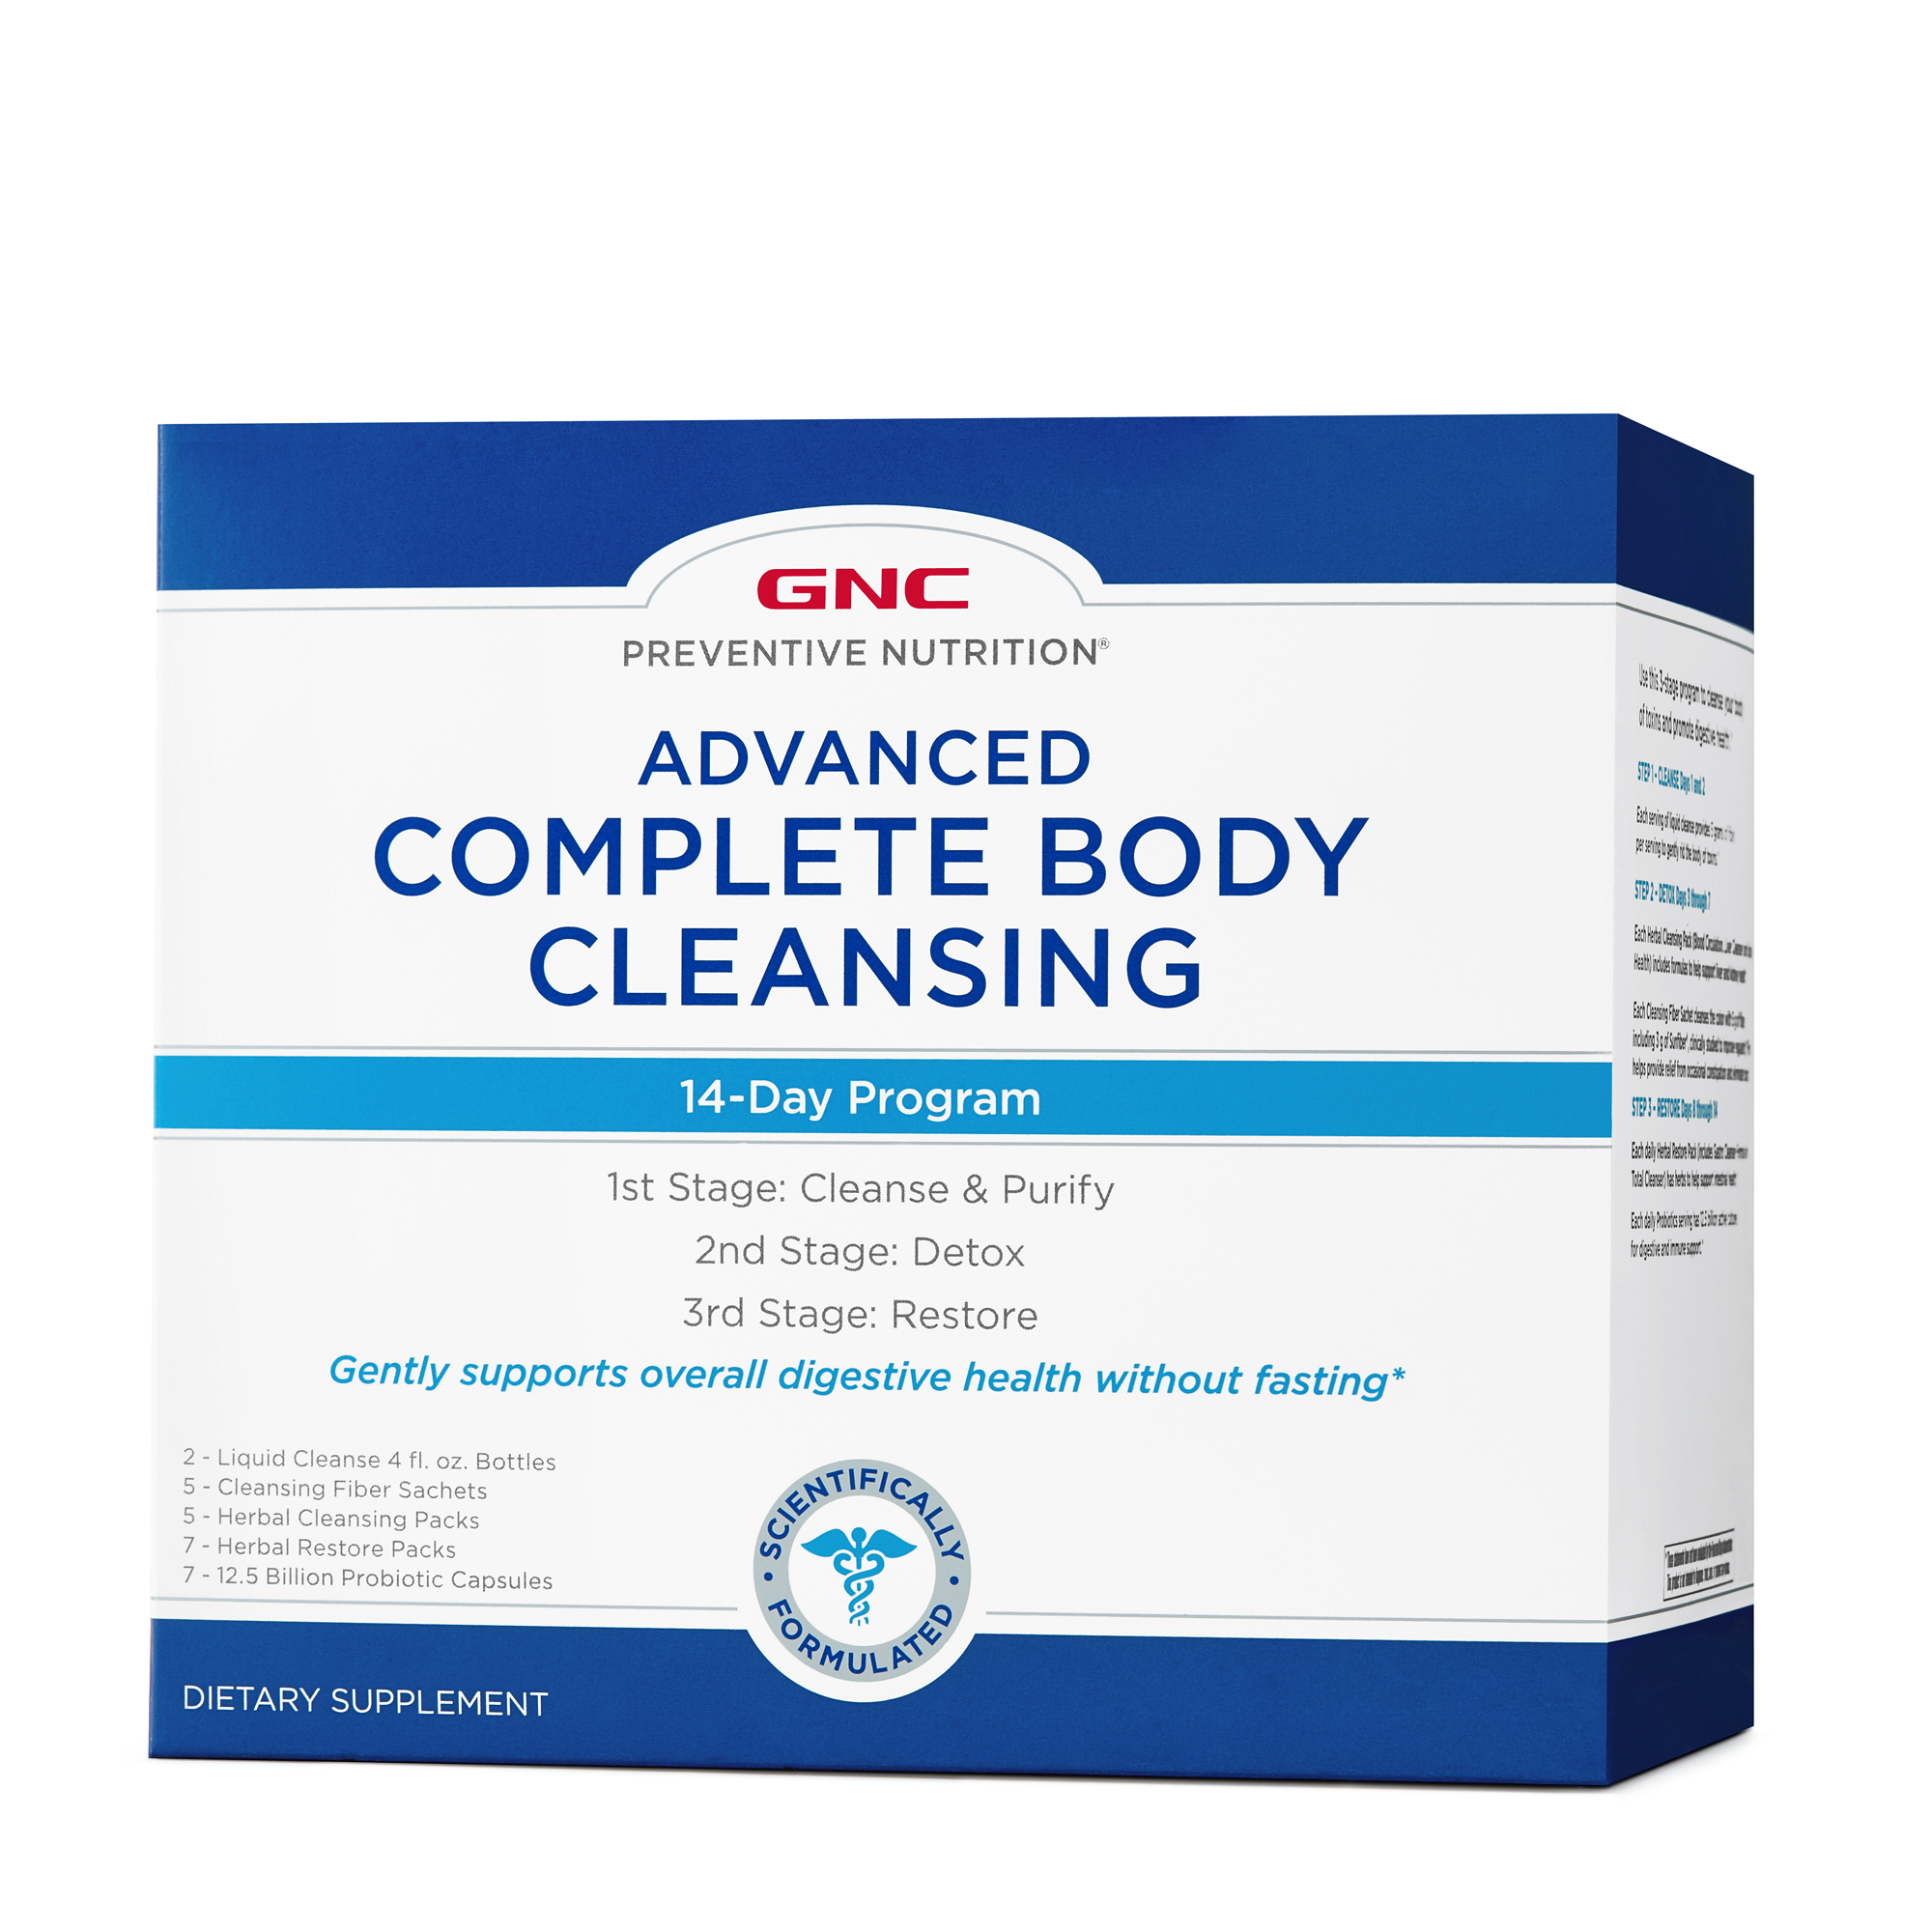 Advanced 14-Day Complete Body Cleansing